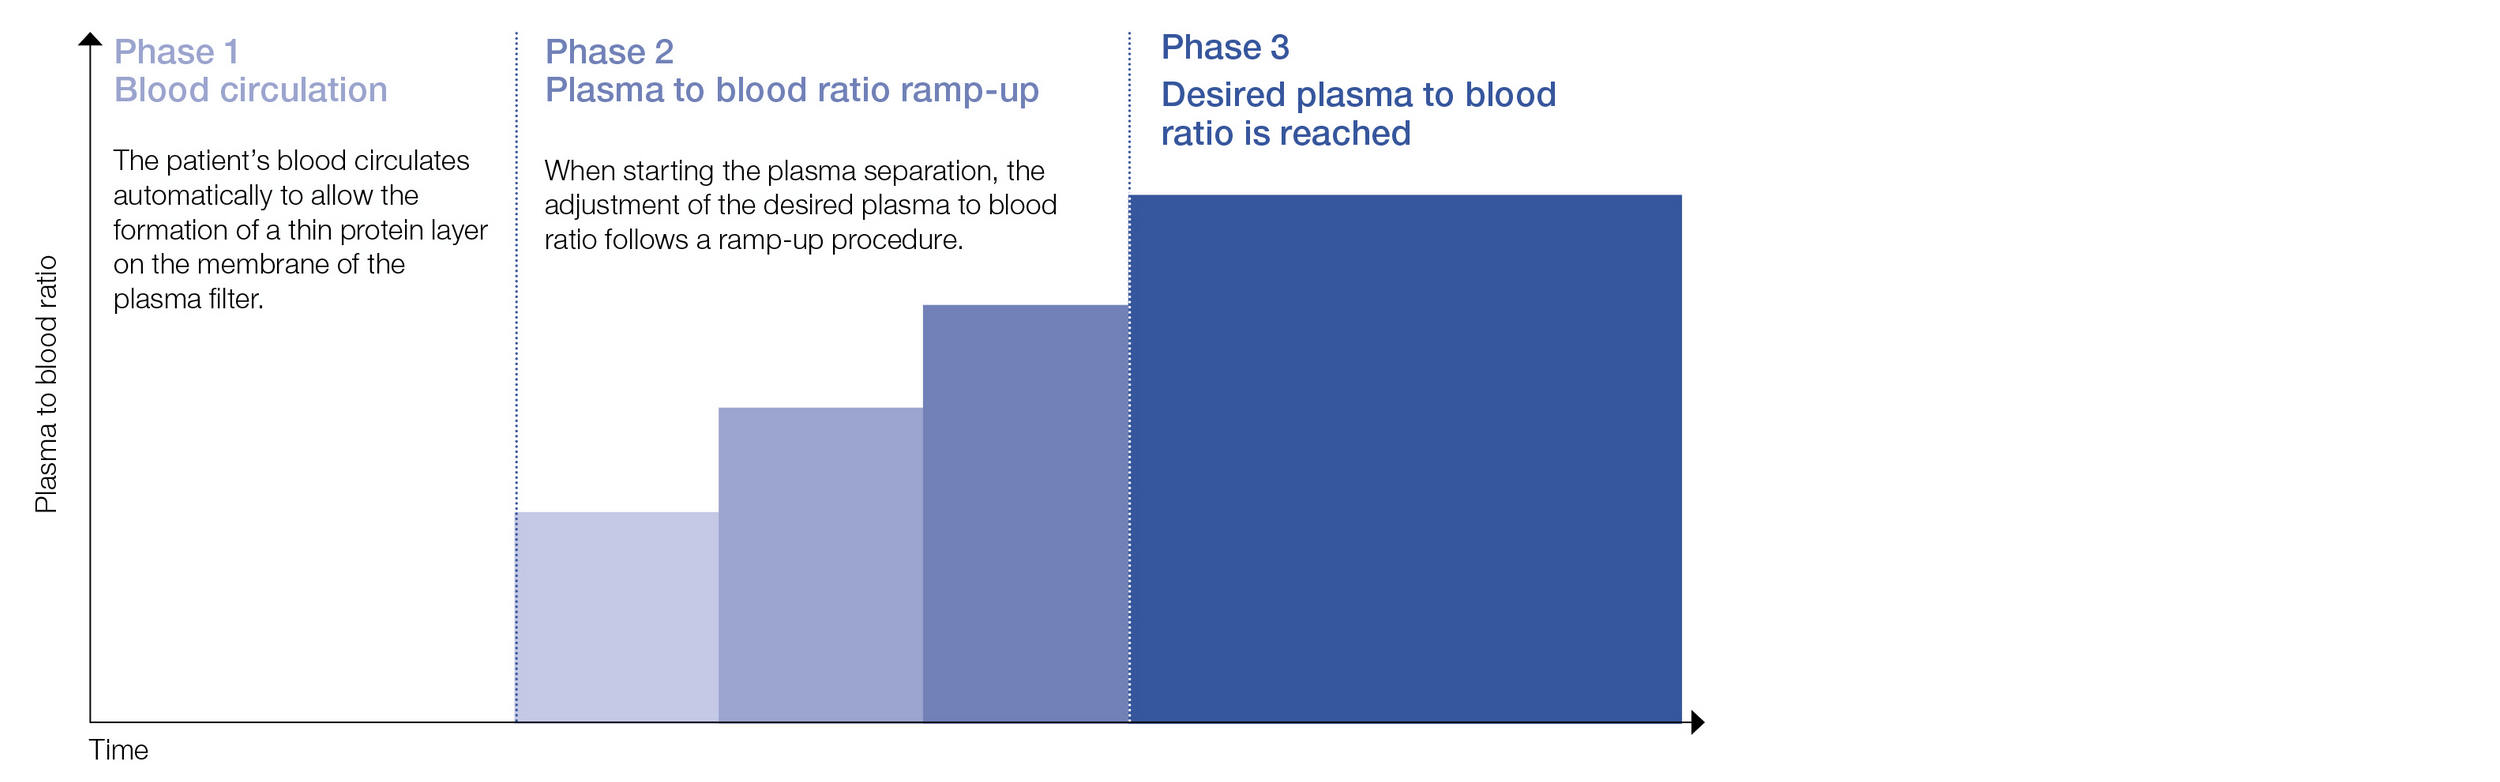 Automated ramp-up of plasma separation